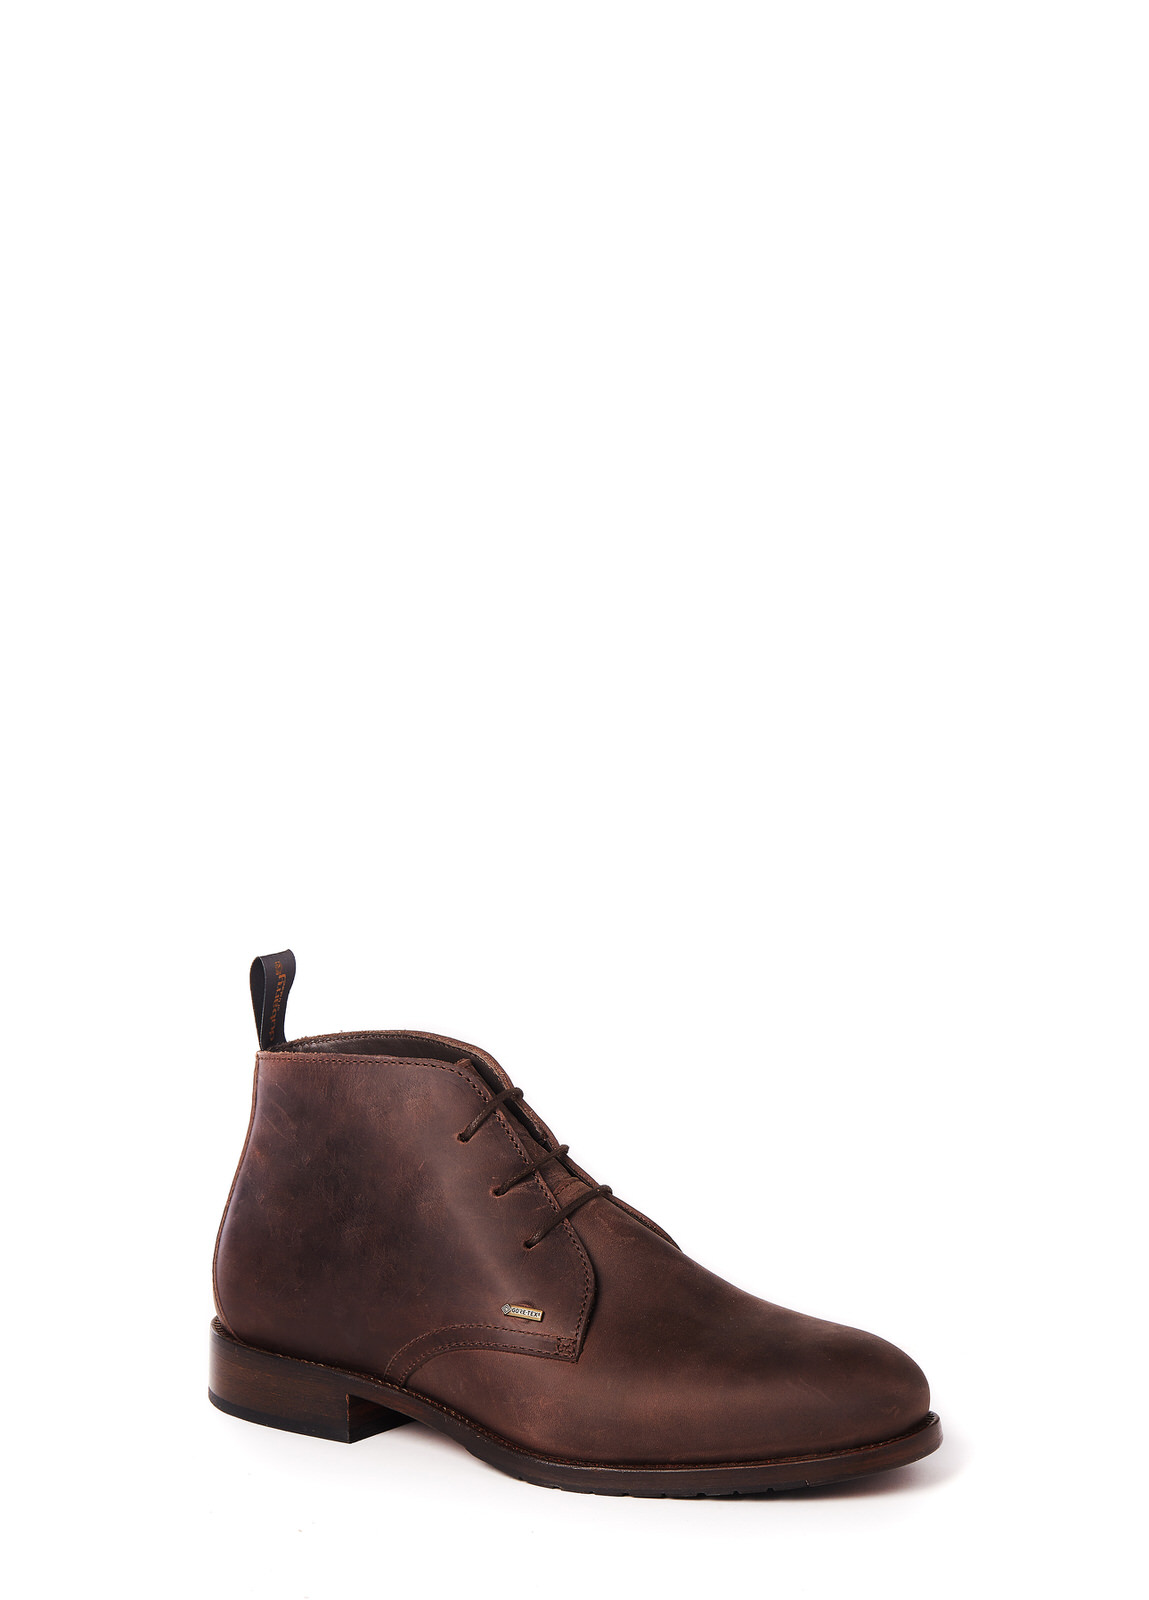 Dubarry_Waterville Mid Top Leather Boot - Old Rum_Image_1